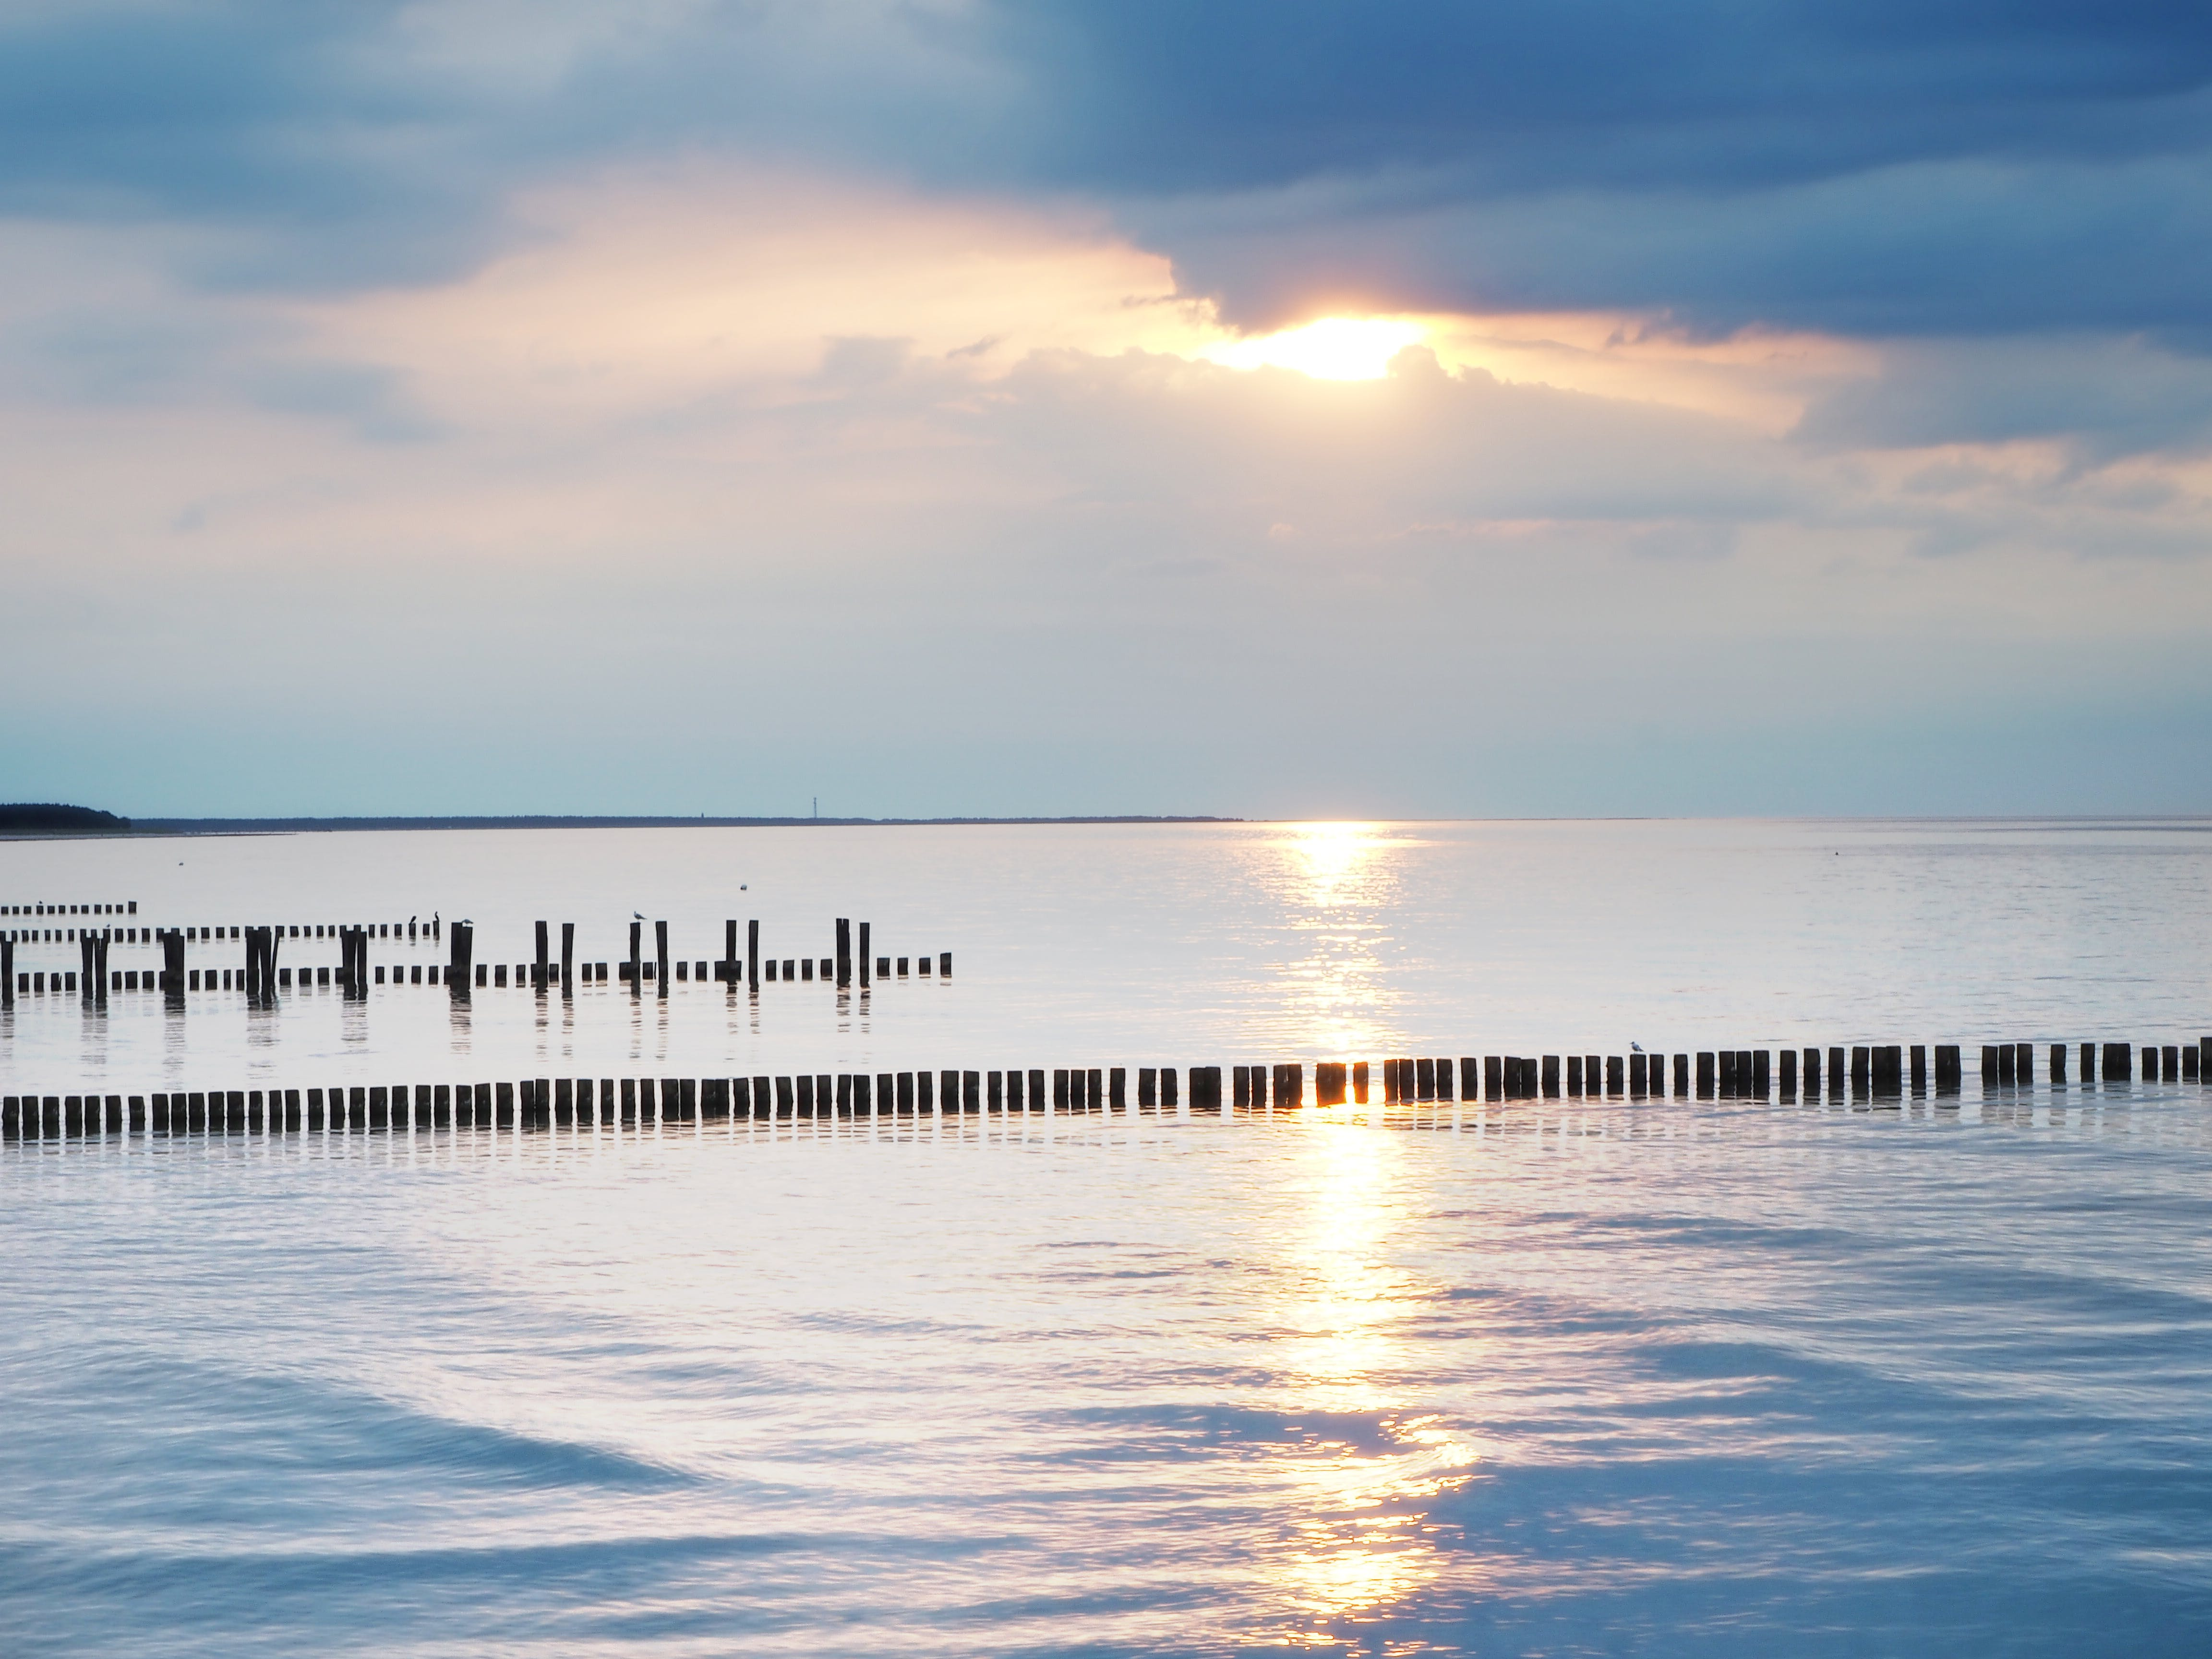 Free stock photo of Baltic Sea, evening